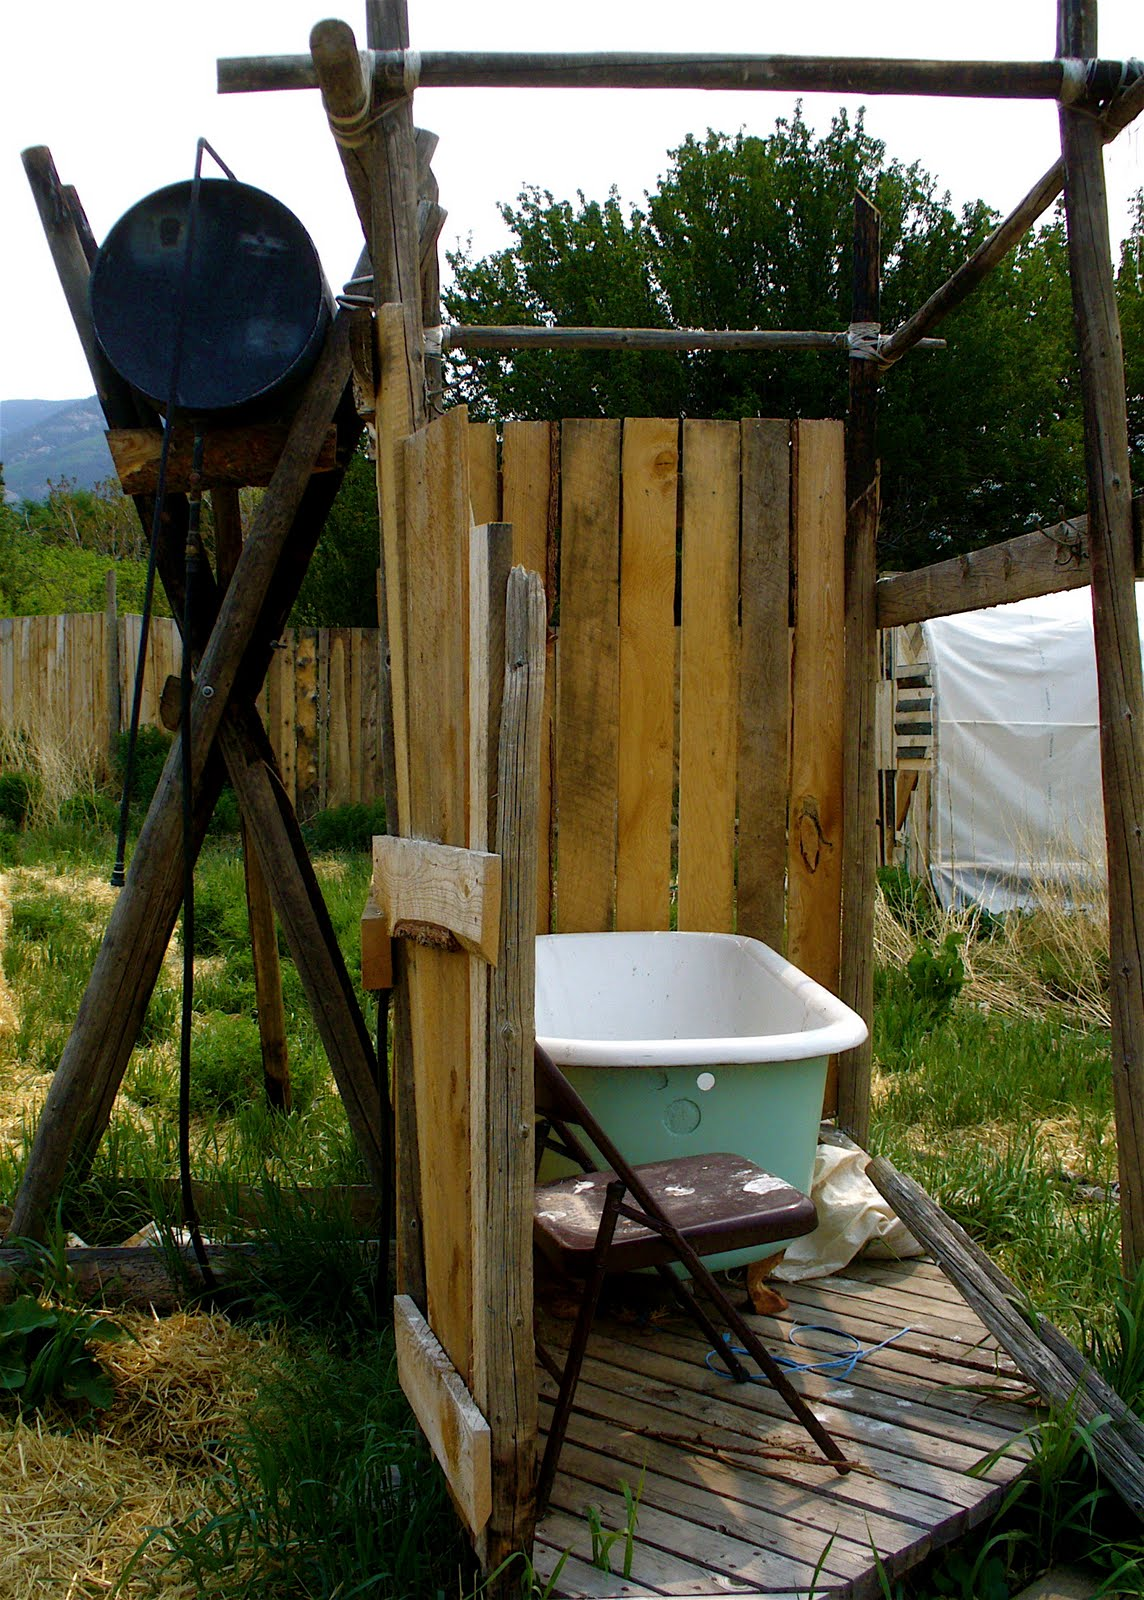 Make An Outdoor Shower Alt Build Blog Hoop Houses And An Outdoor Shower In